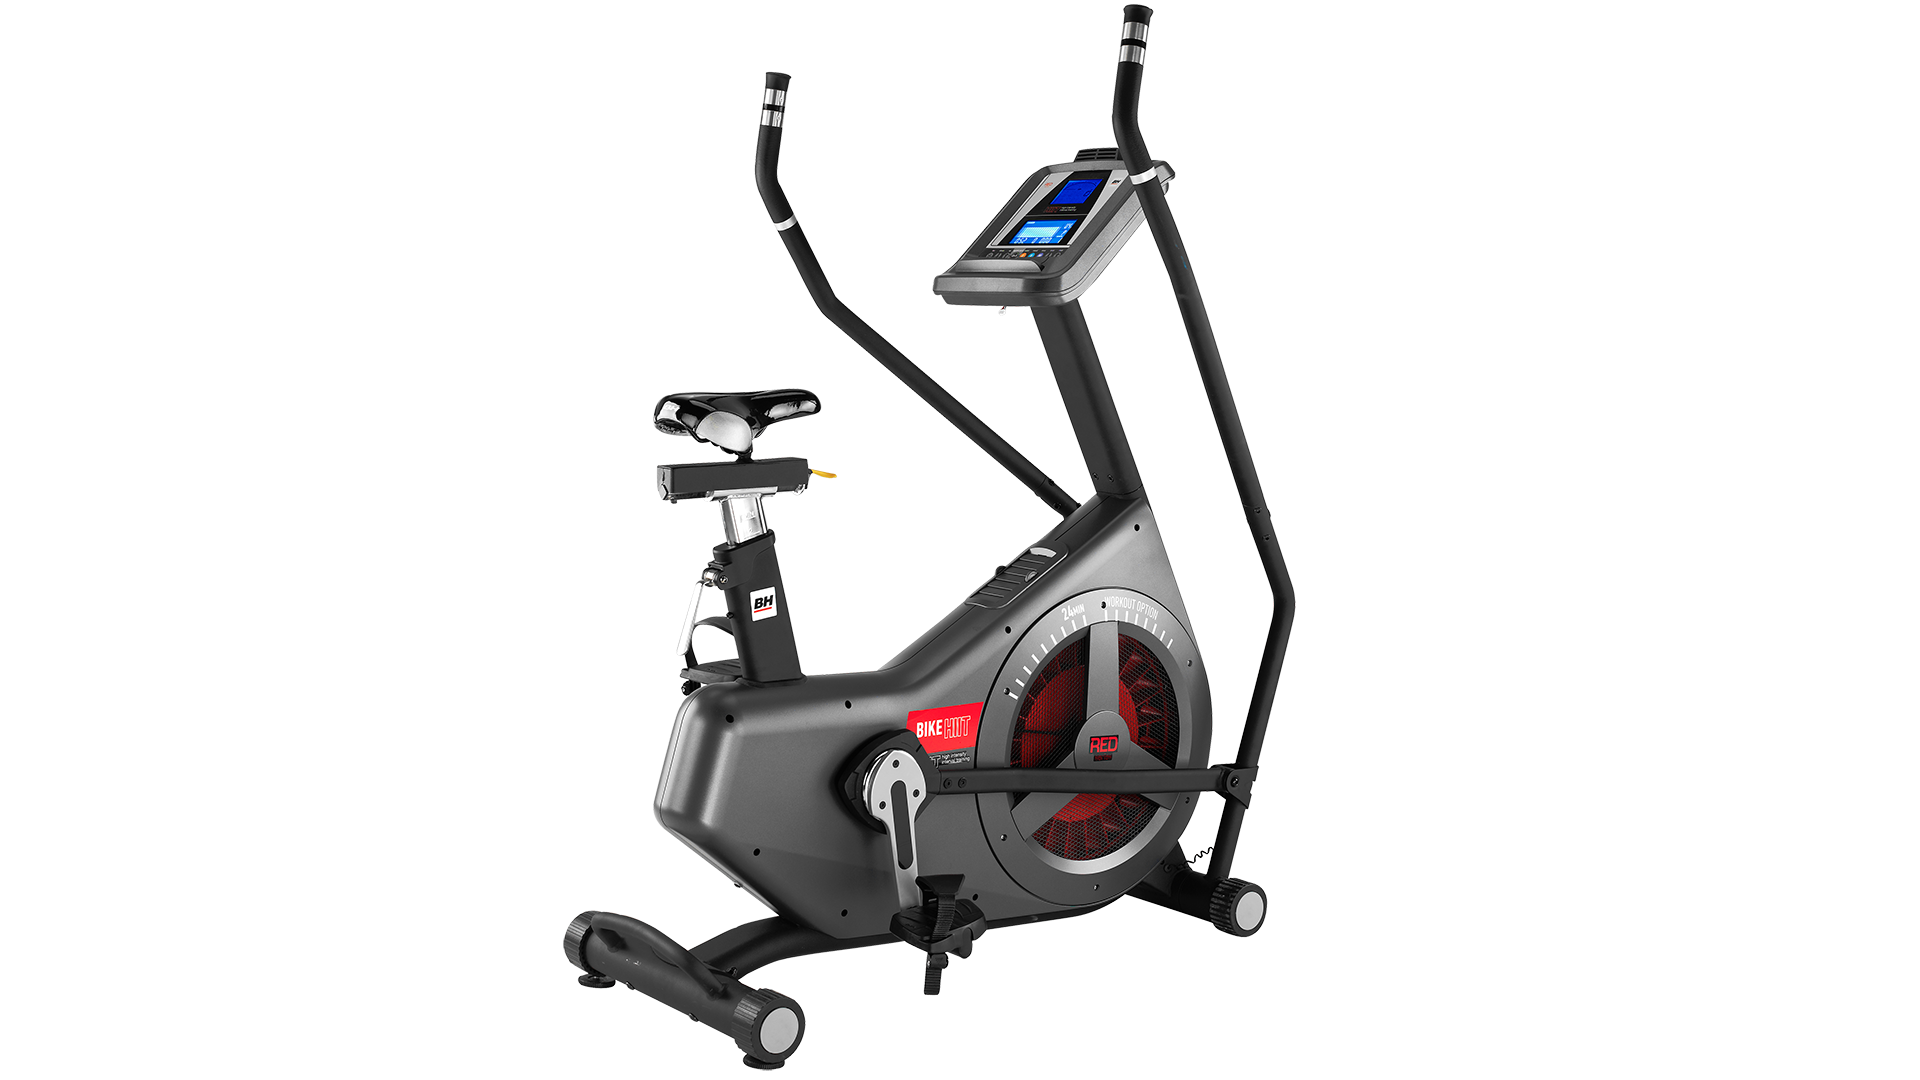 LK7850 Professional upright bike